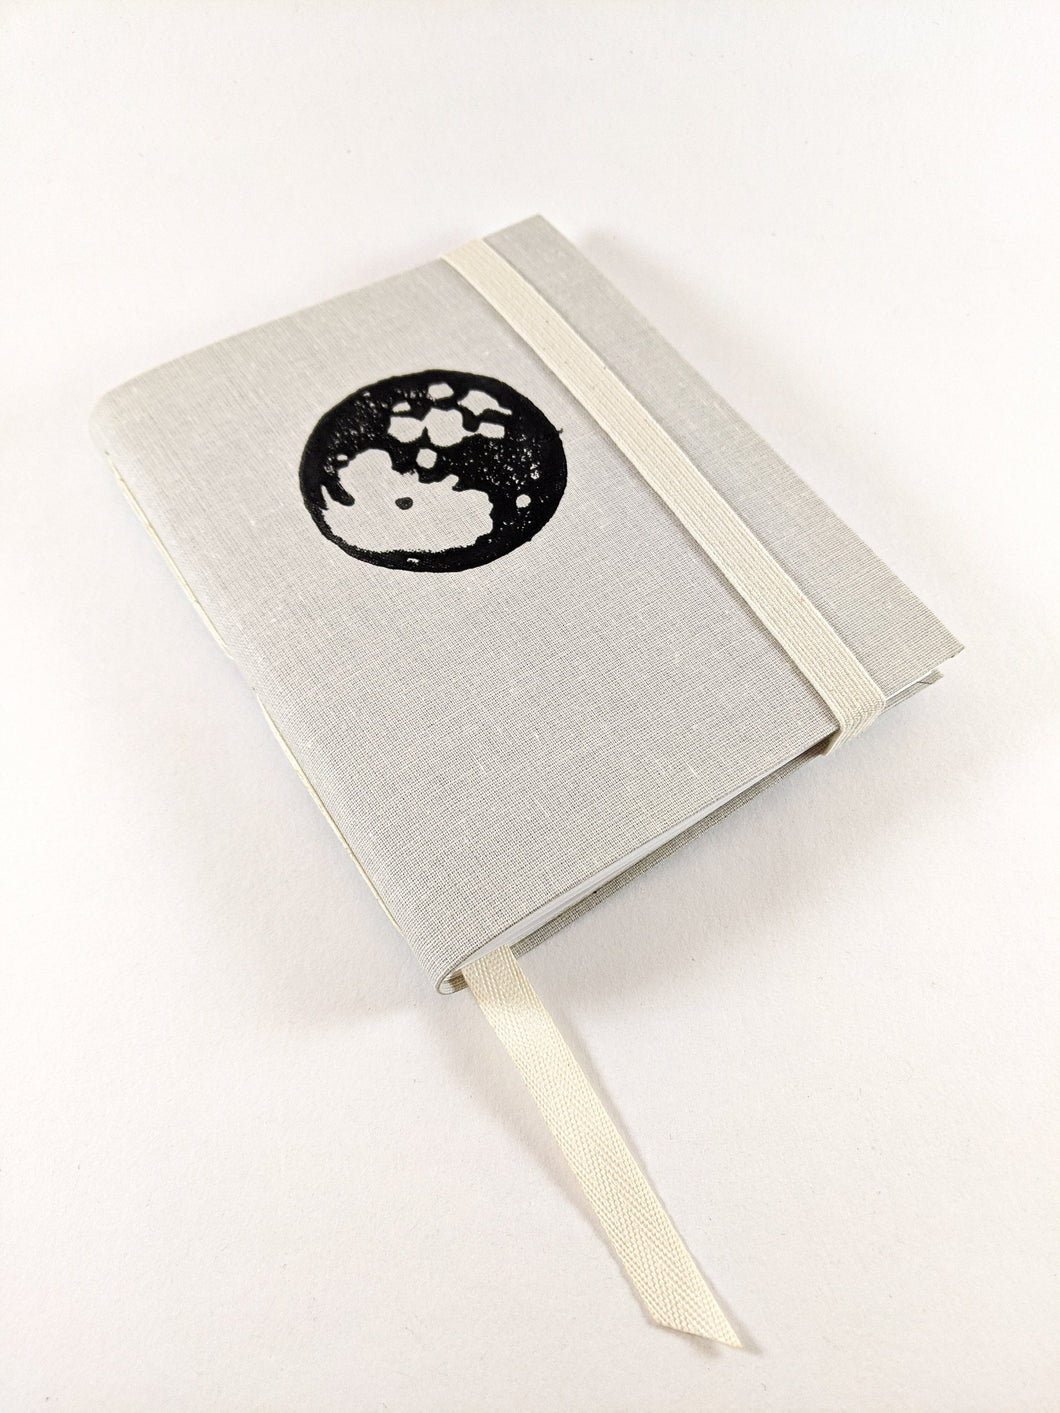 Moon Cloth Astrology Birthday Calendar Book with Black Moon Print and White Thread